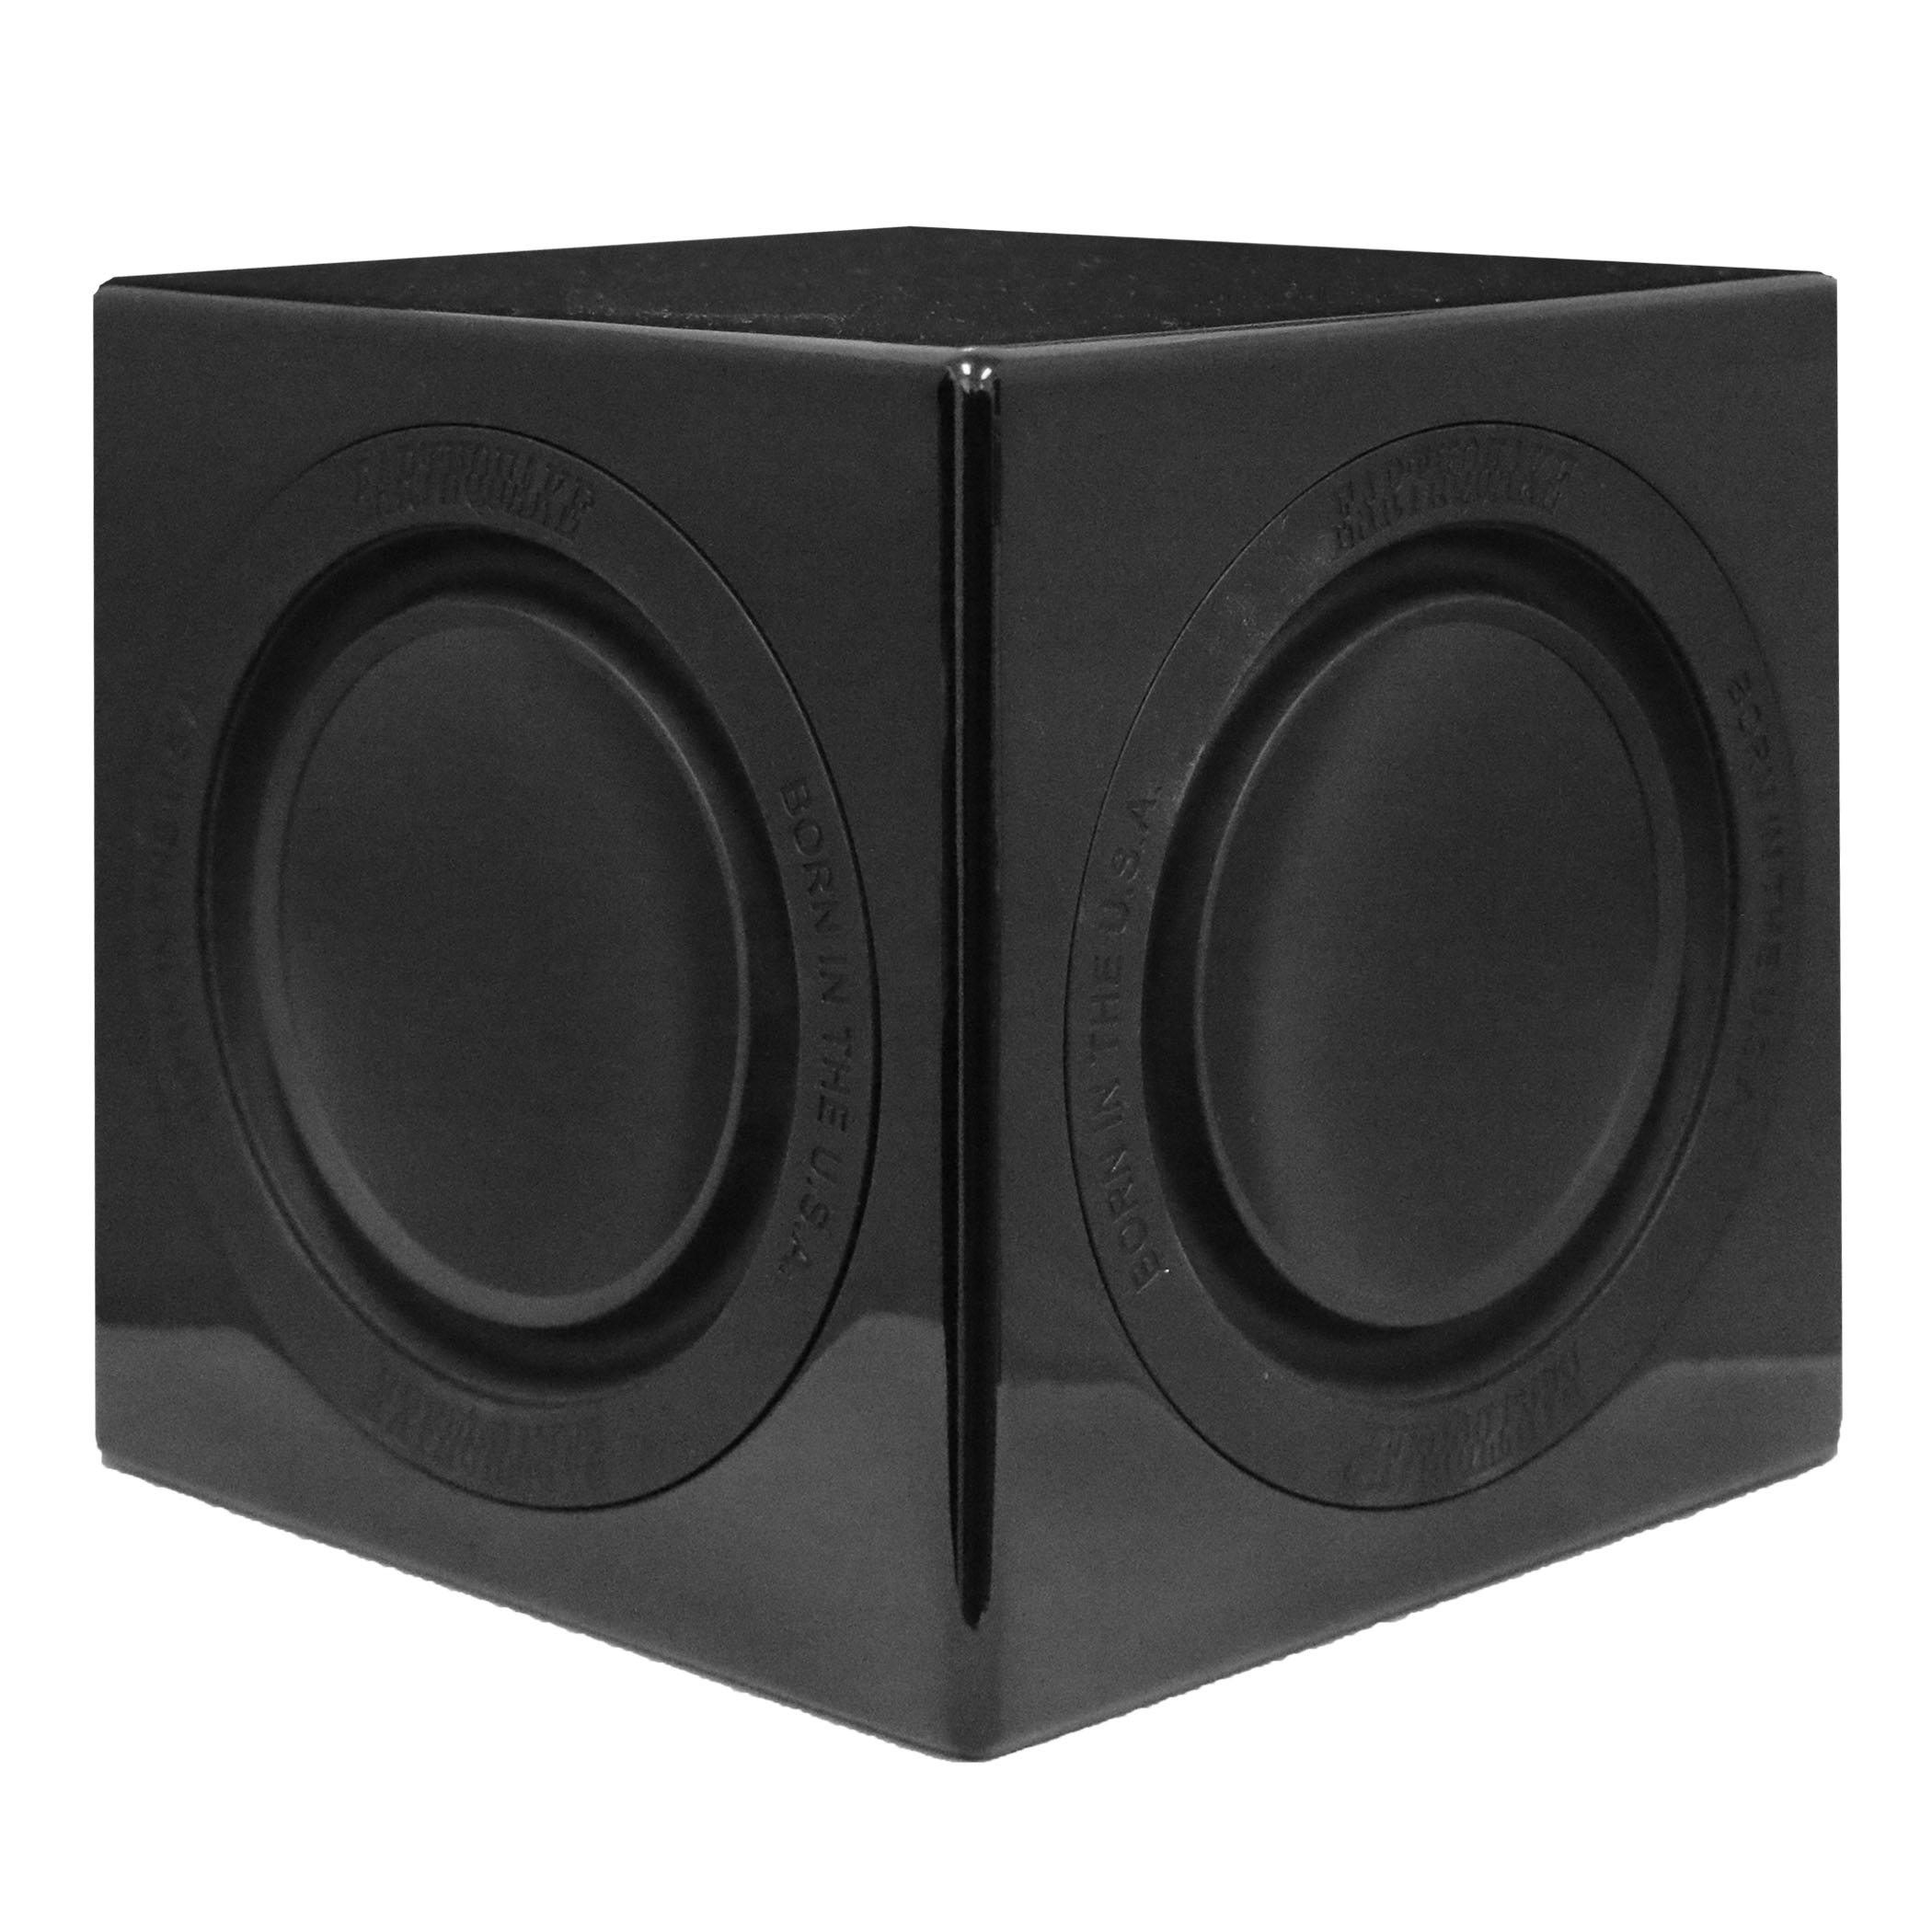 Image of   MiniMe-P63-B sort subwoofer